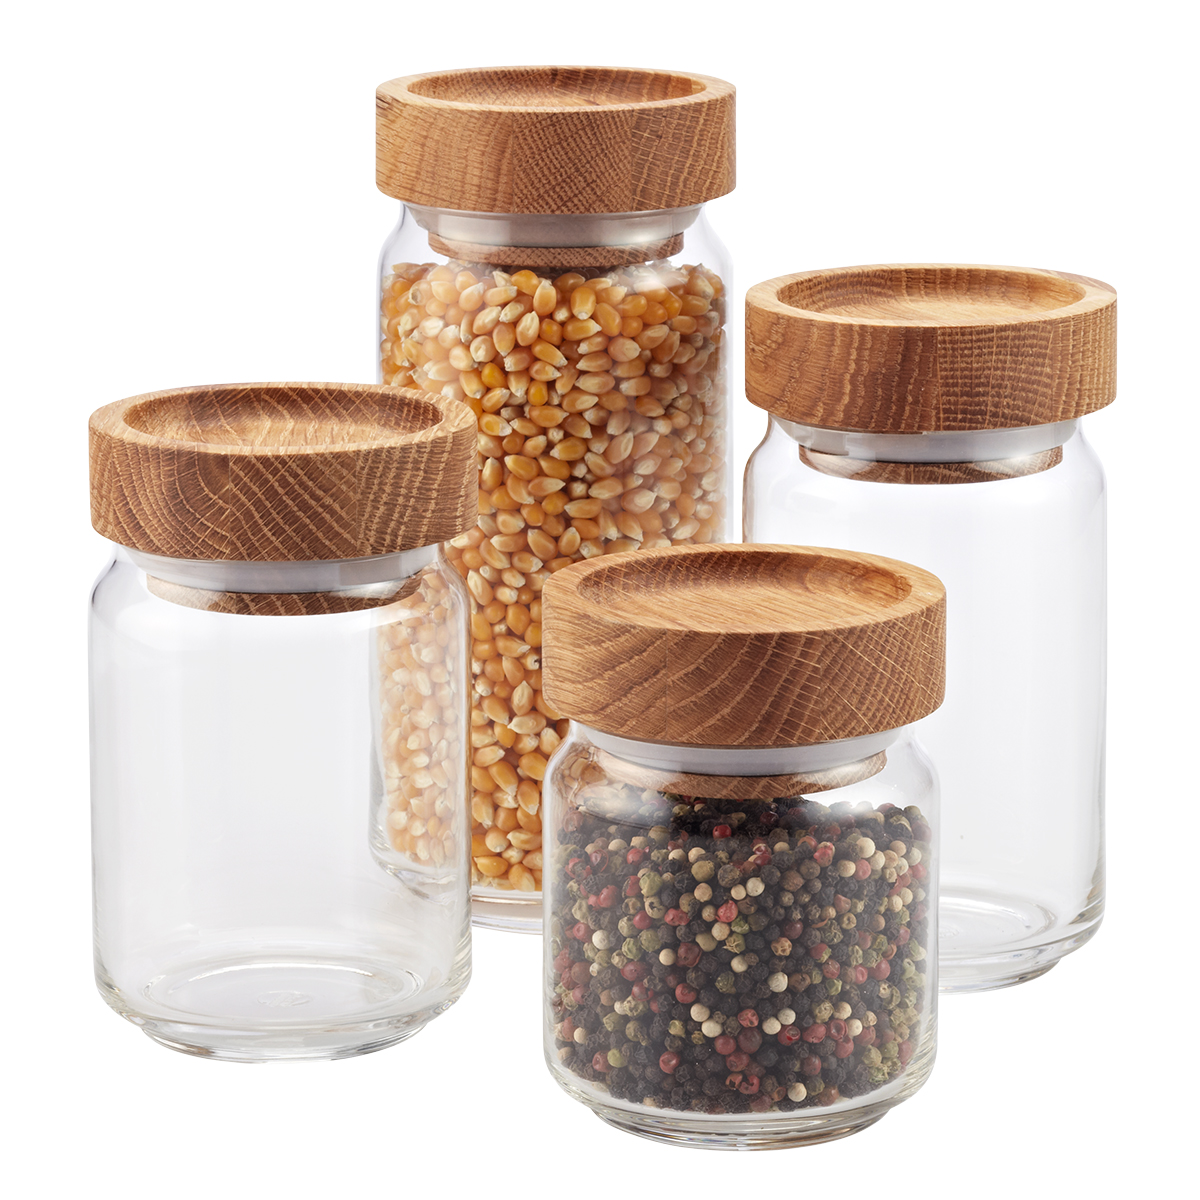 kitchen canisters glass canisters canister sets kitchen canisters glass canisters